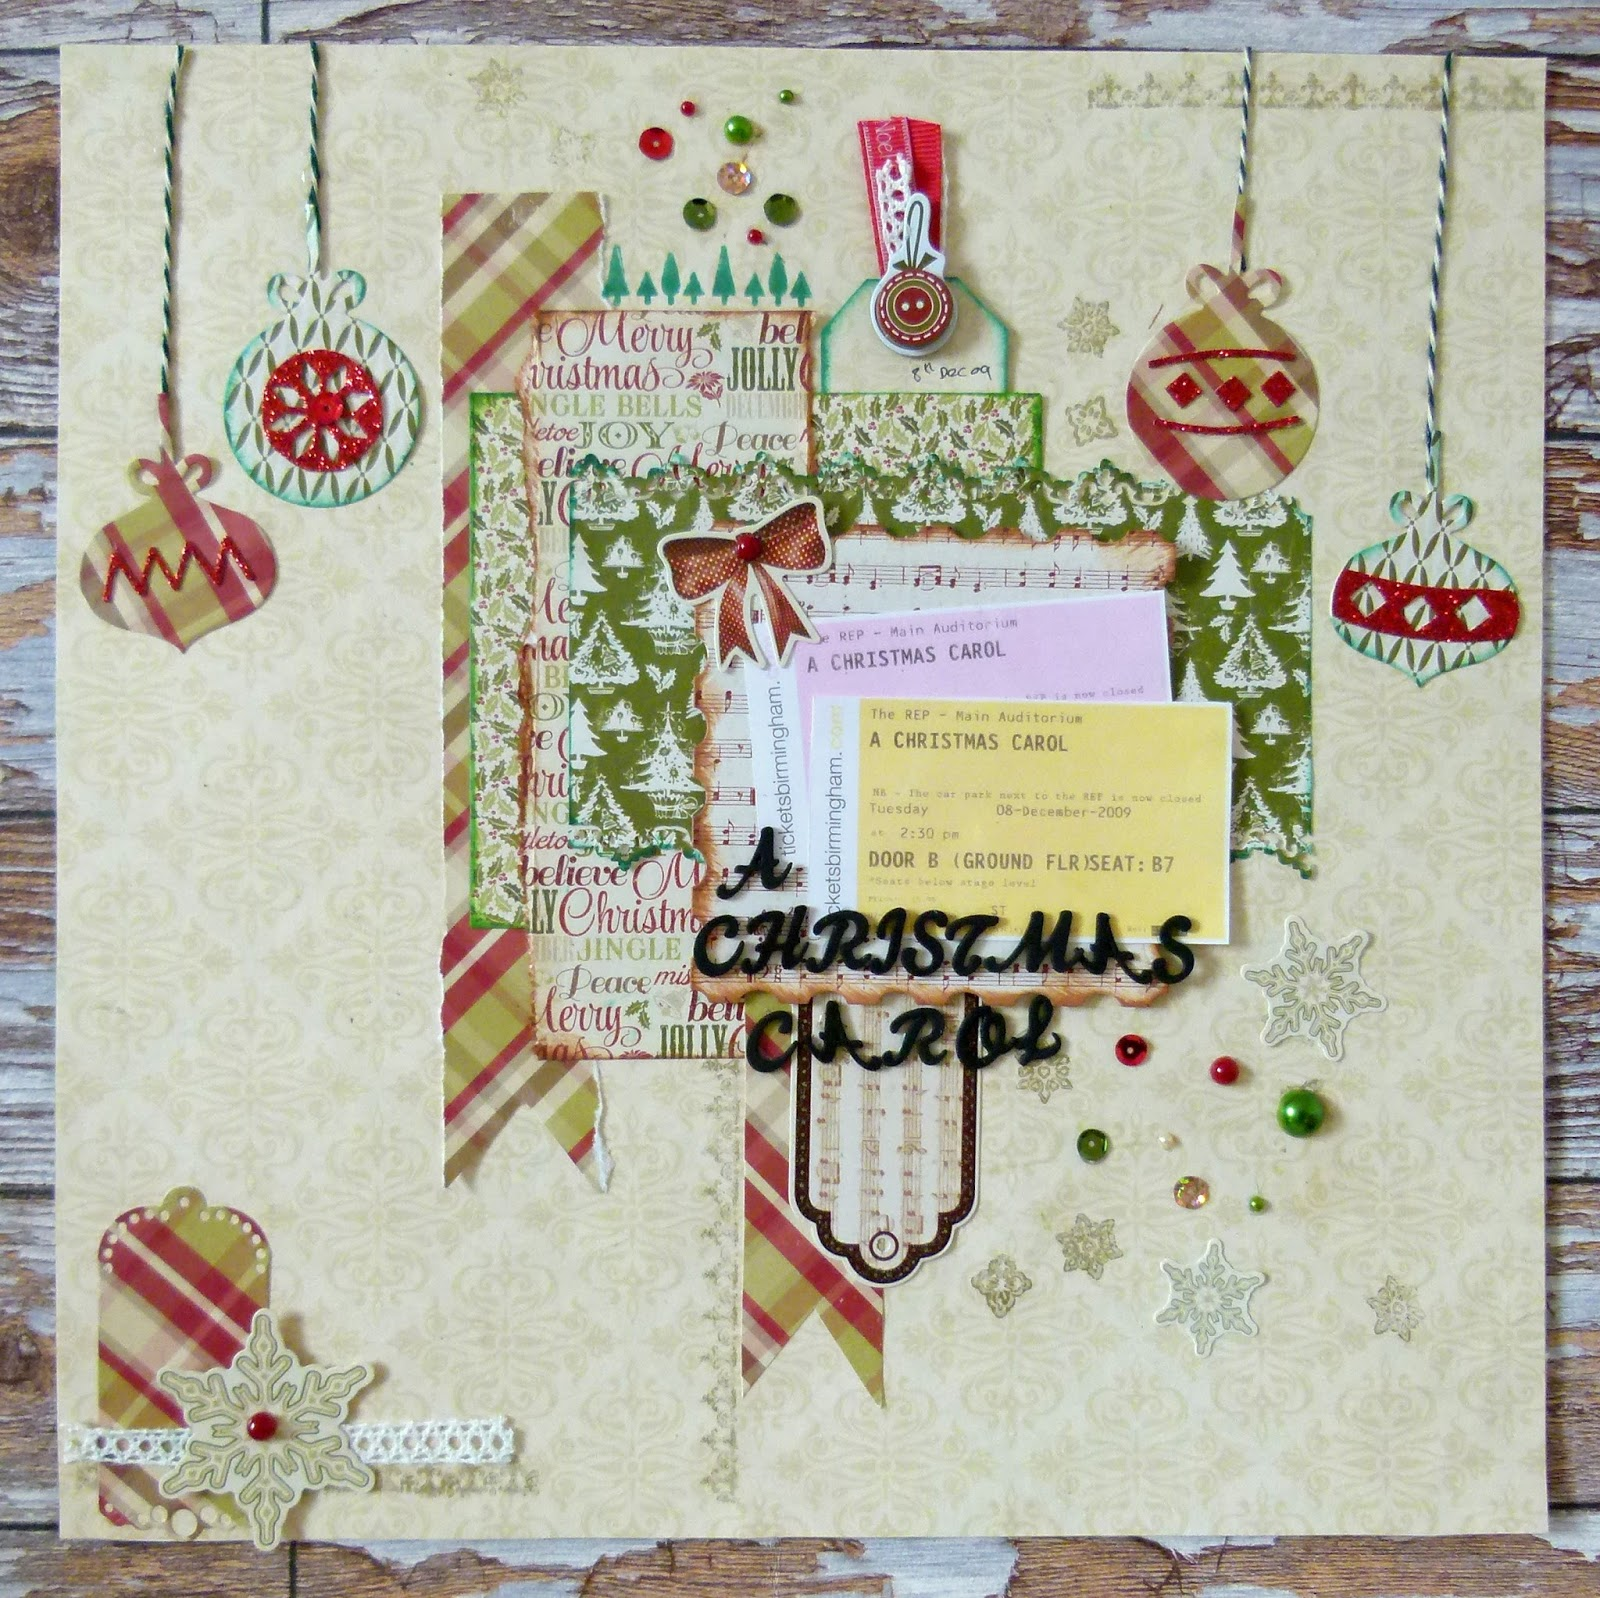 Scrapbook ideas without photos - The Full Tutorial Is Available Here Http Www Trimcraft Co Uk Articles Scrapbook Tutorial Building Layouts Without Photos